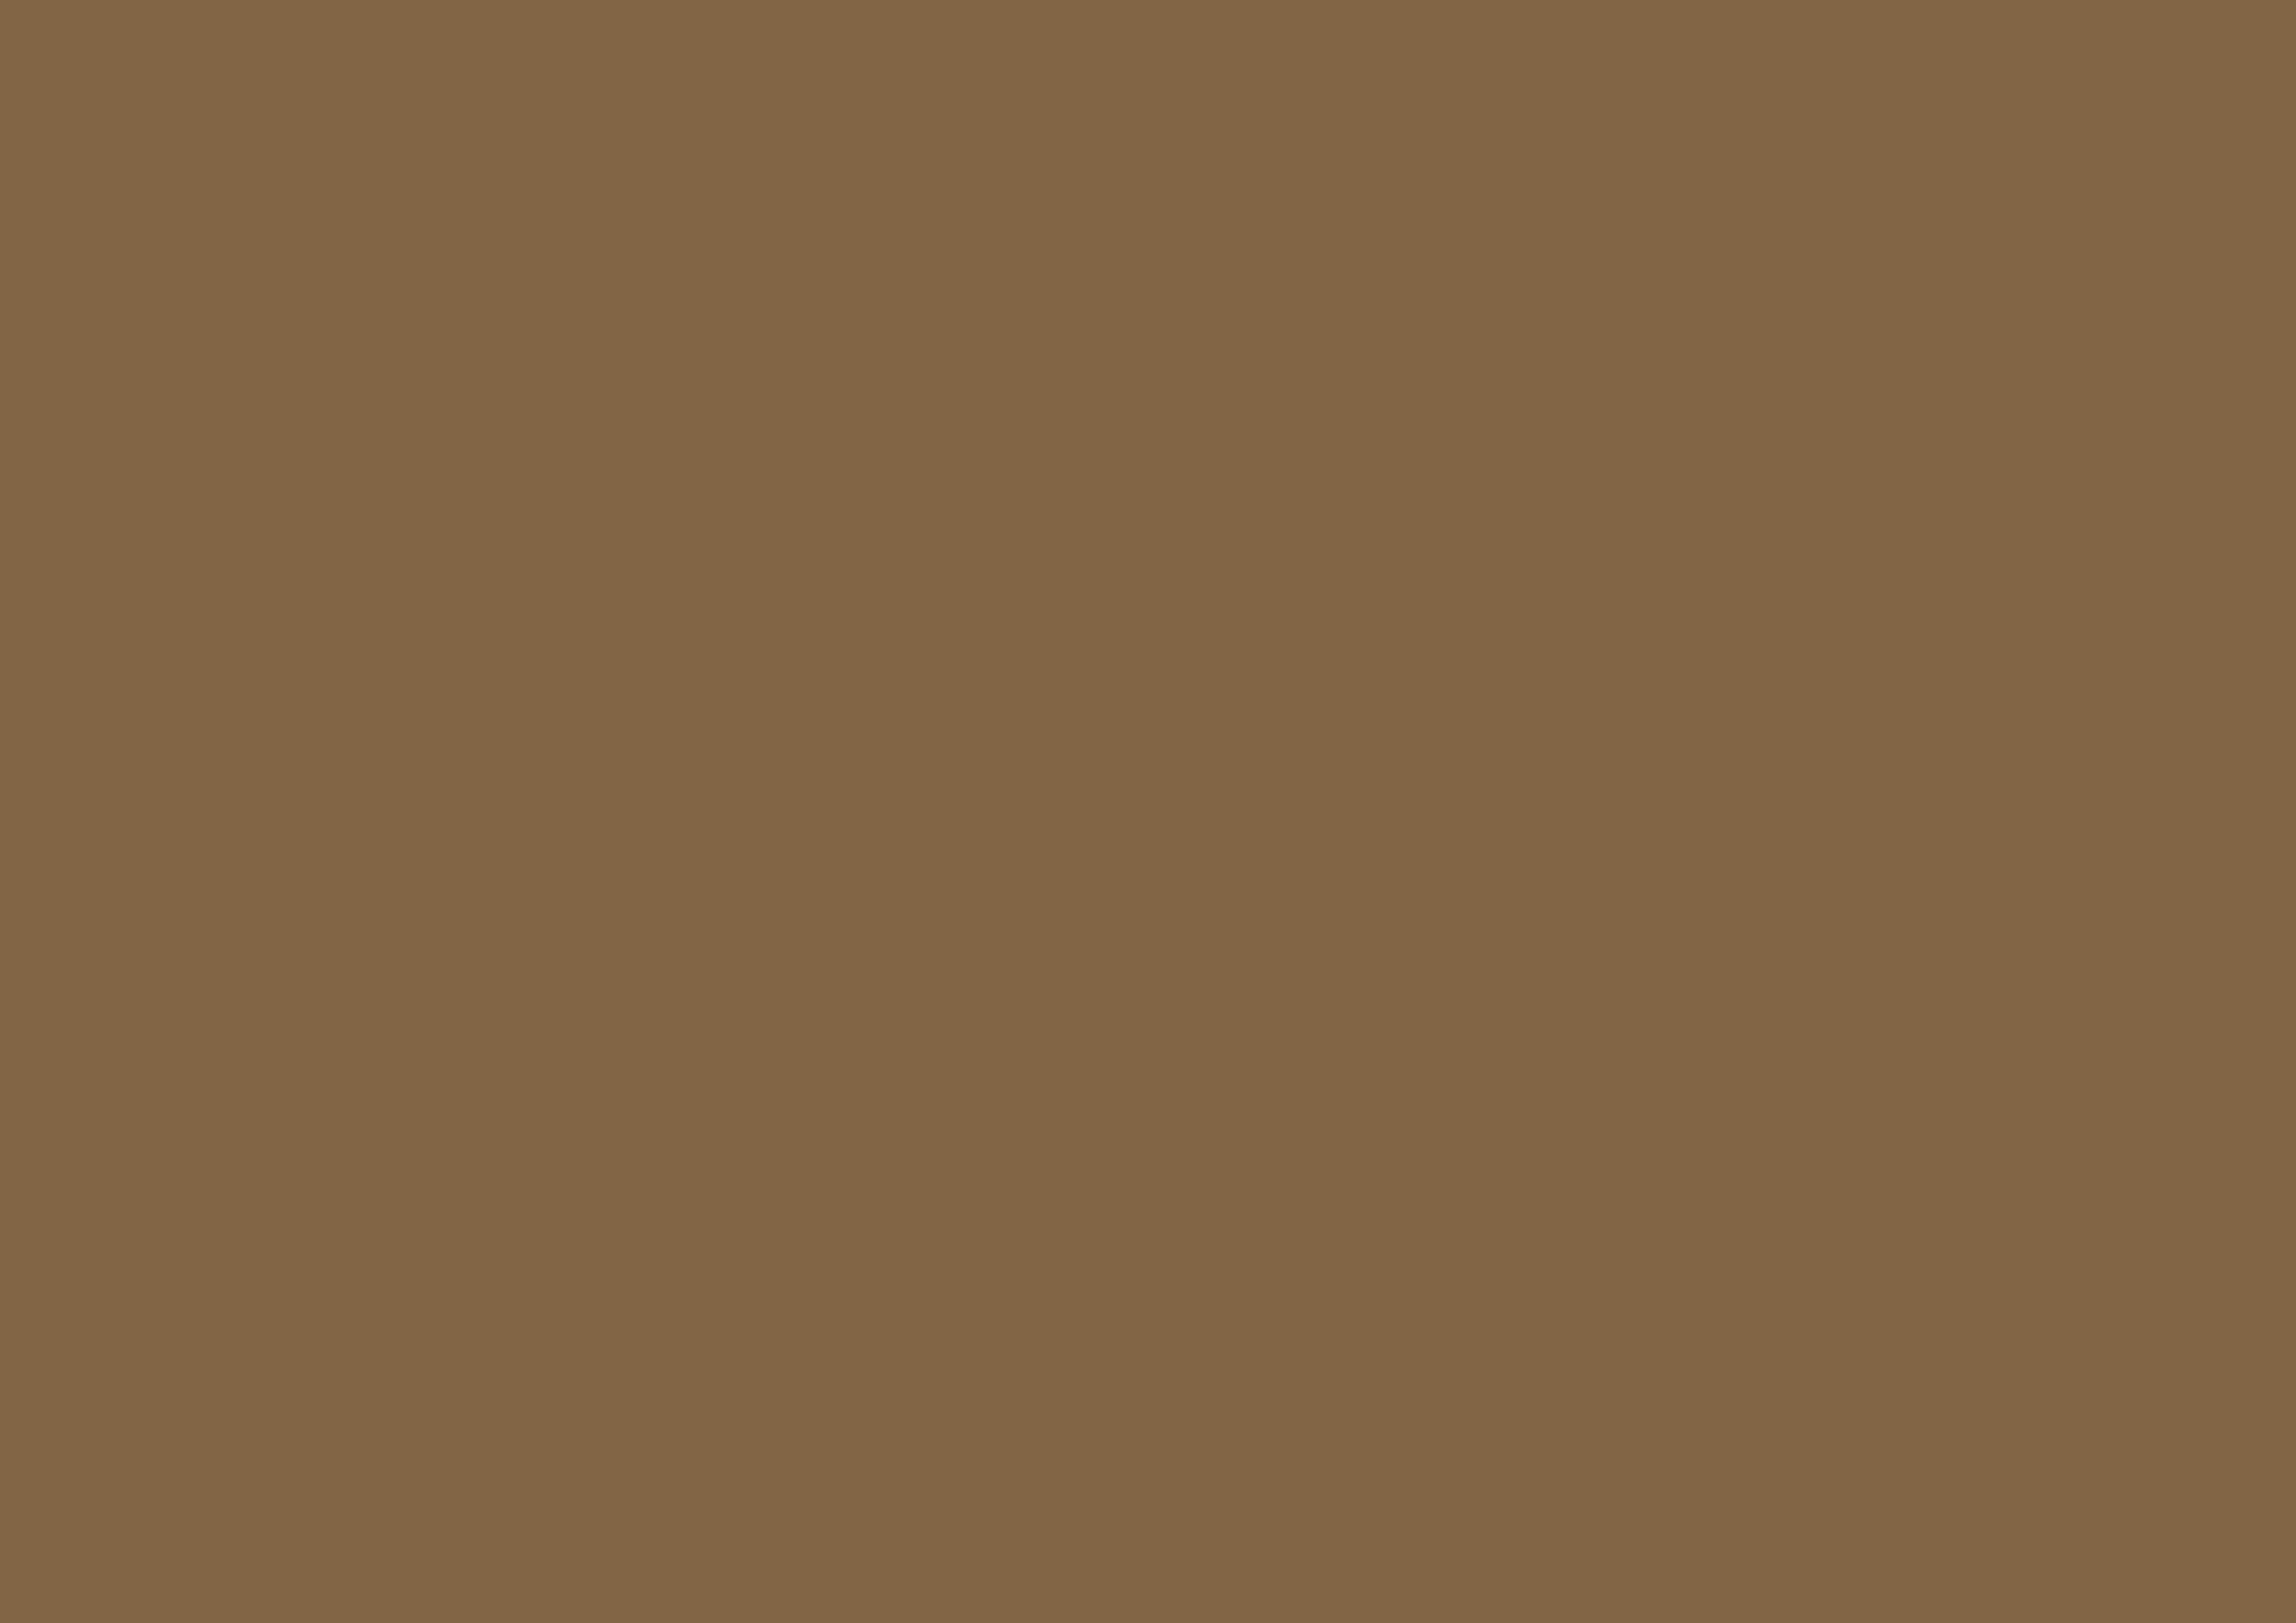 3508x2480 Raw Umber Solid Color Background